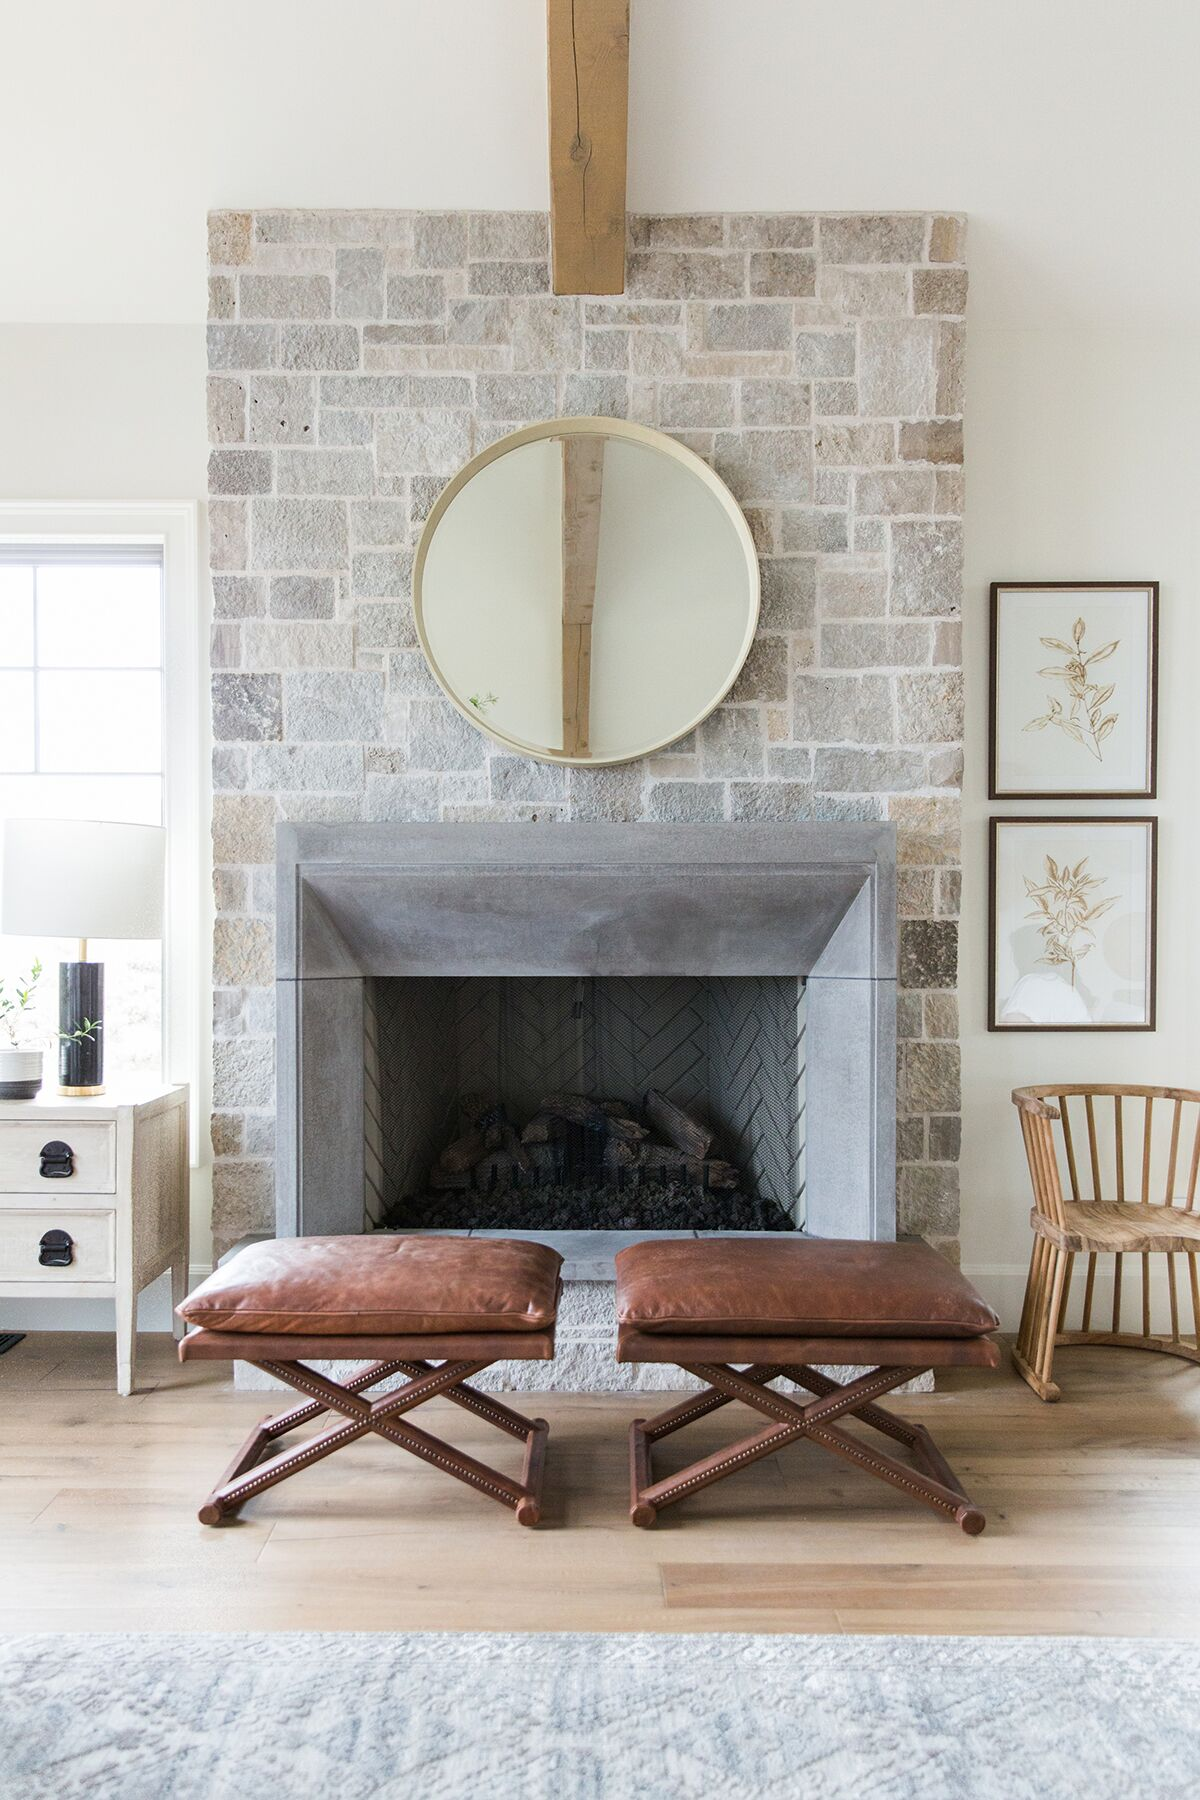 Stone fireplace with molded brick, leather x-stools, seating area by fireplace in mountain home - Studio McGee Design